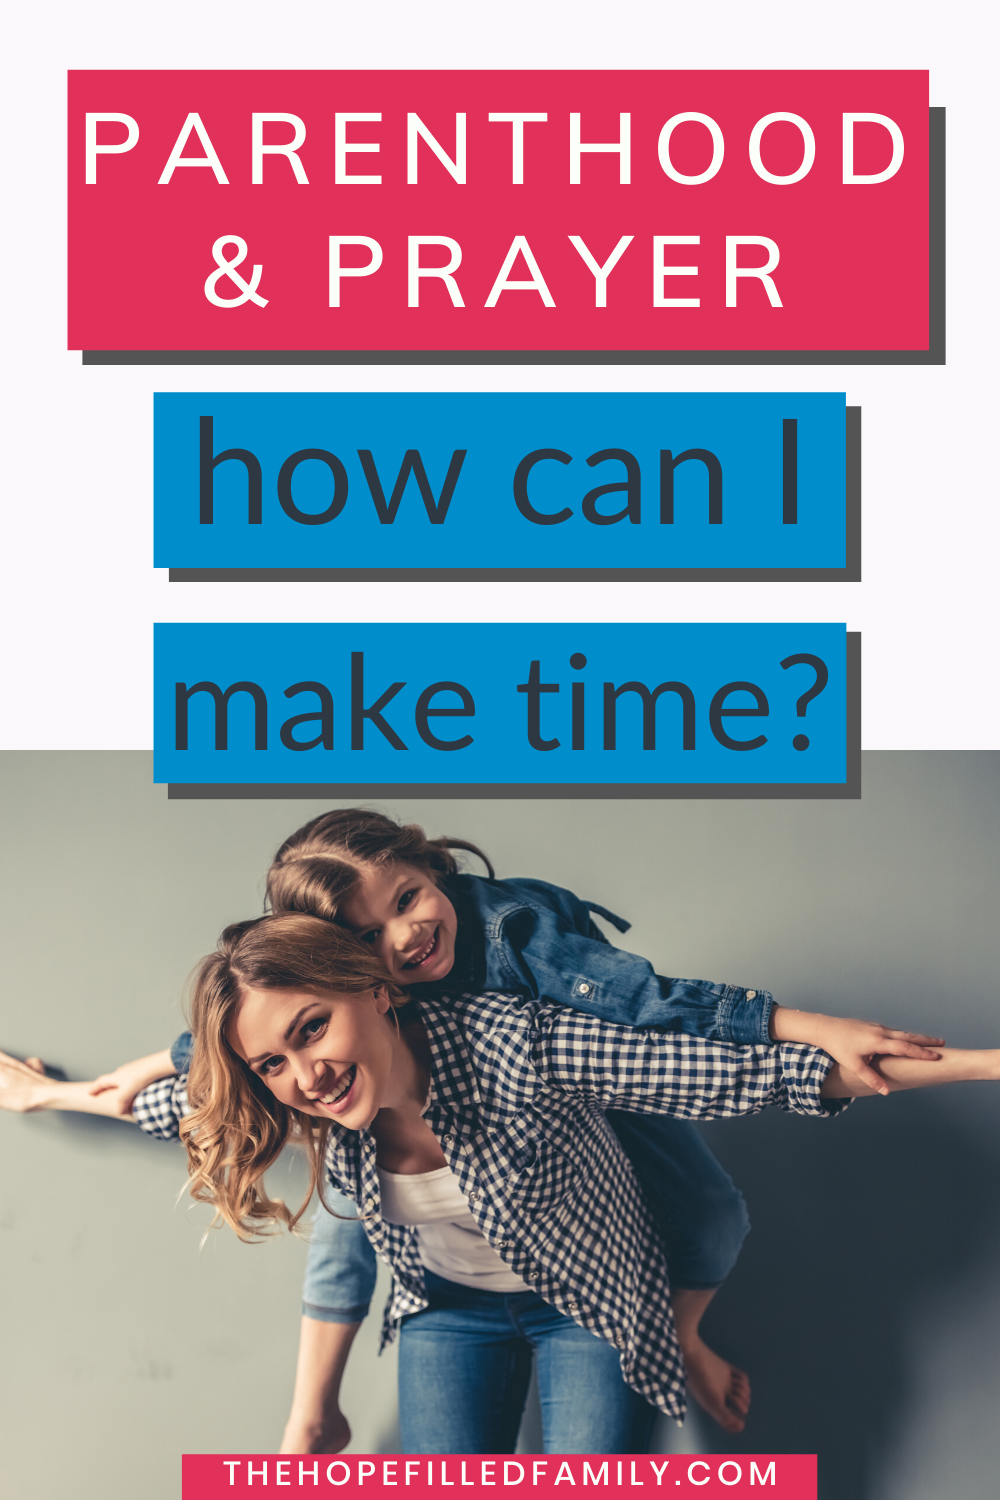 How can I make time for prayer as a busy parent? This article shares some 'why' and 'how' ideas.